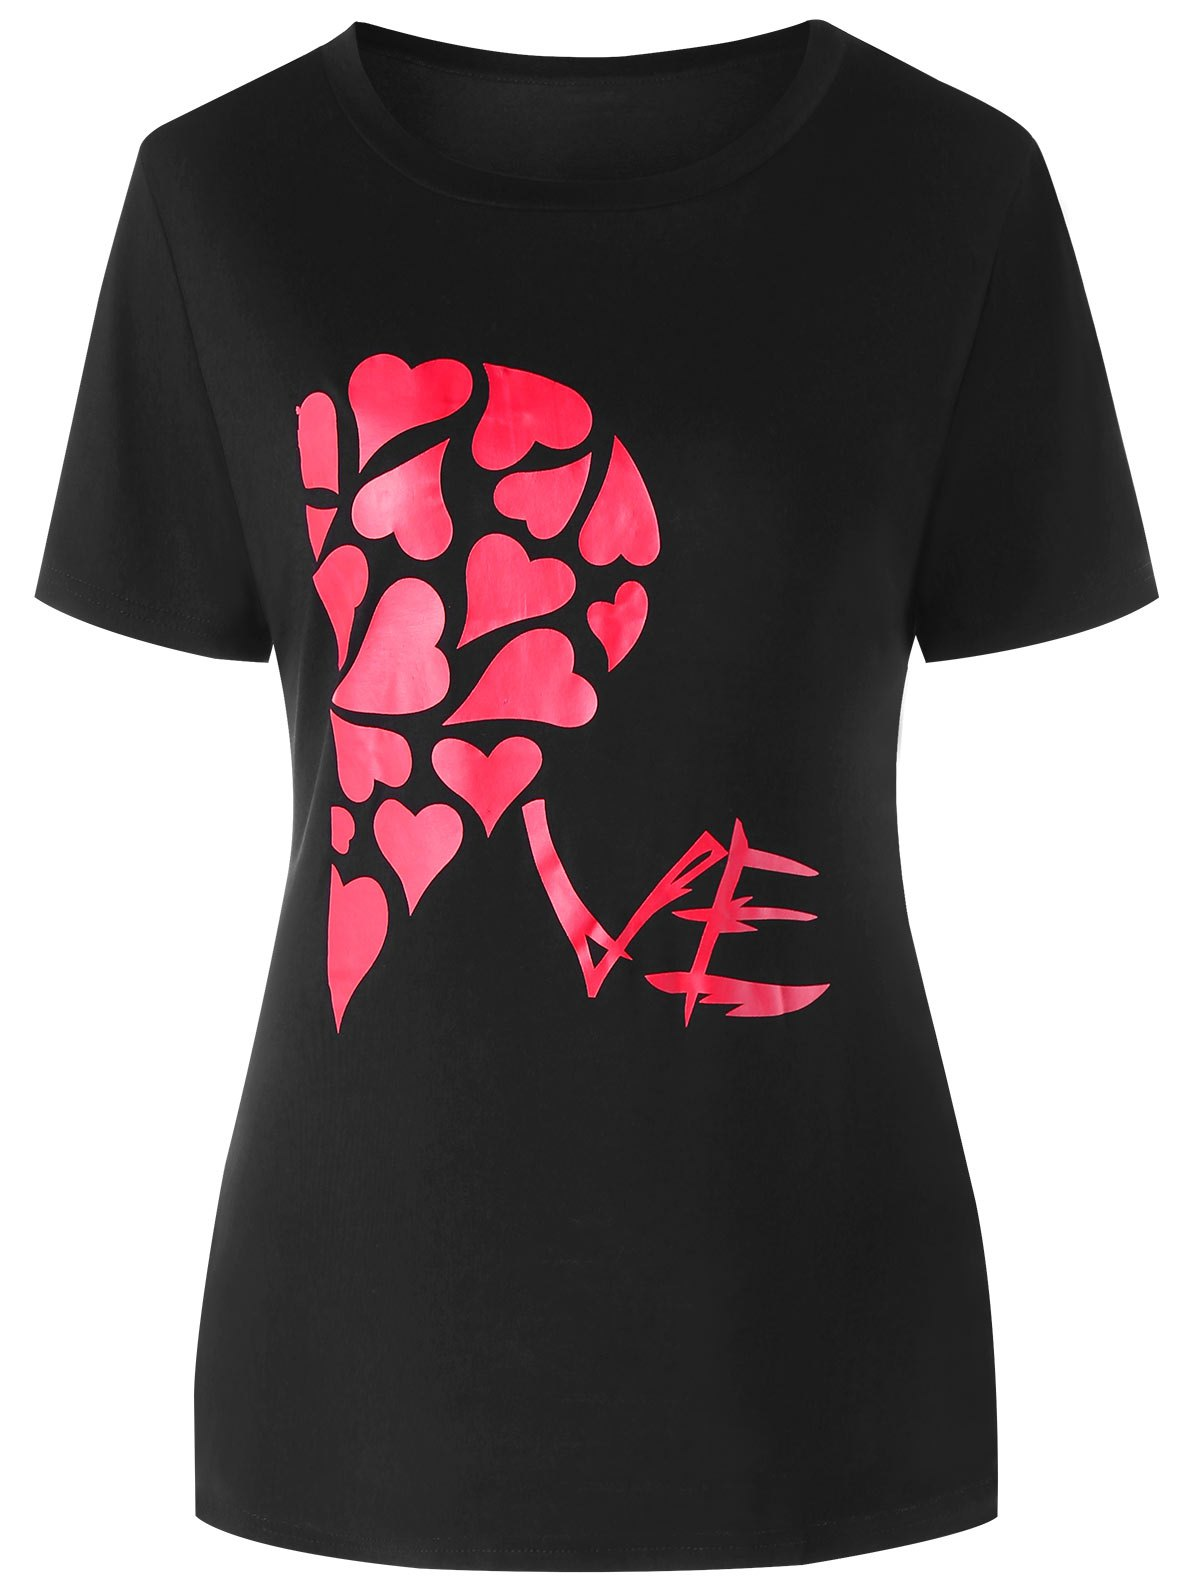 Valentines Day Heart Printed Matching Couple Short Sleeve T-shirt - BLACK WOMEN L